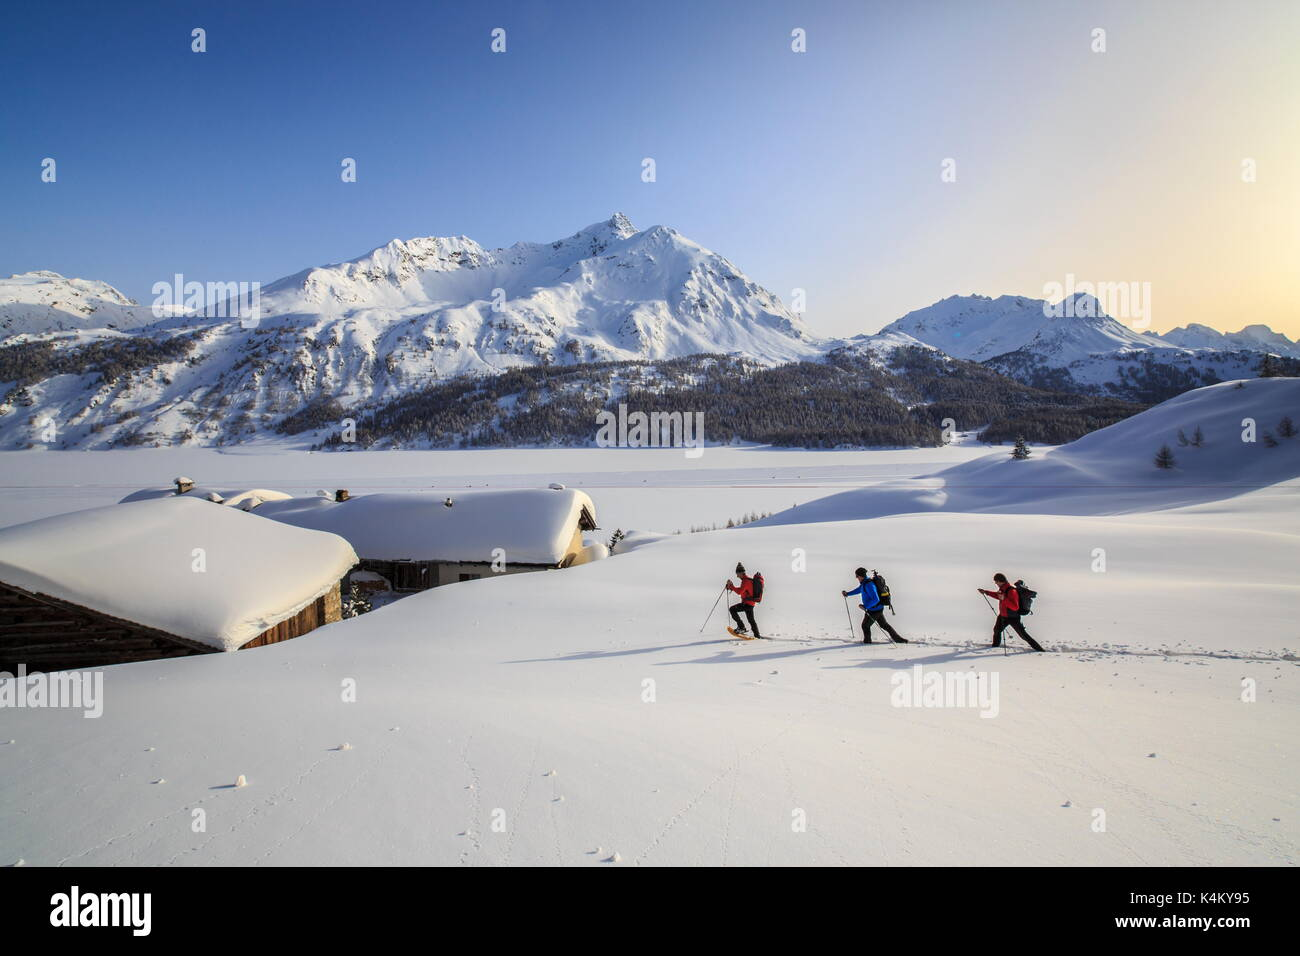 Hikers on snowshoe with Piz Da La Margna on background, Spluga, Switzerland - Stock Image